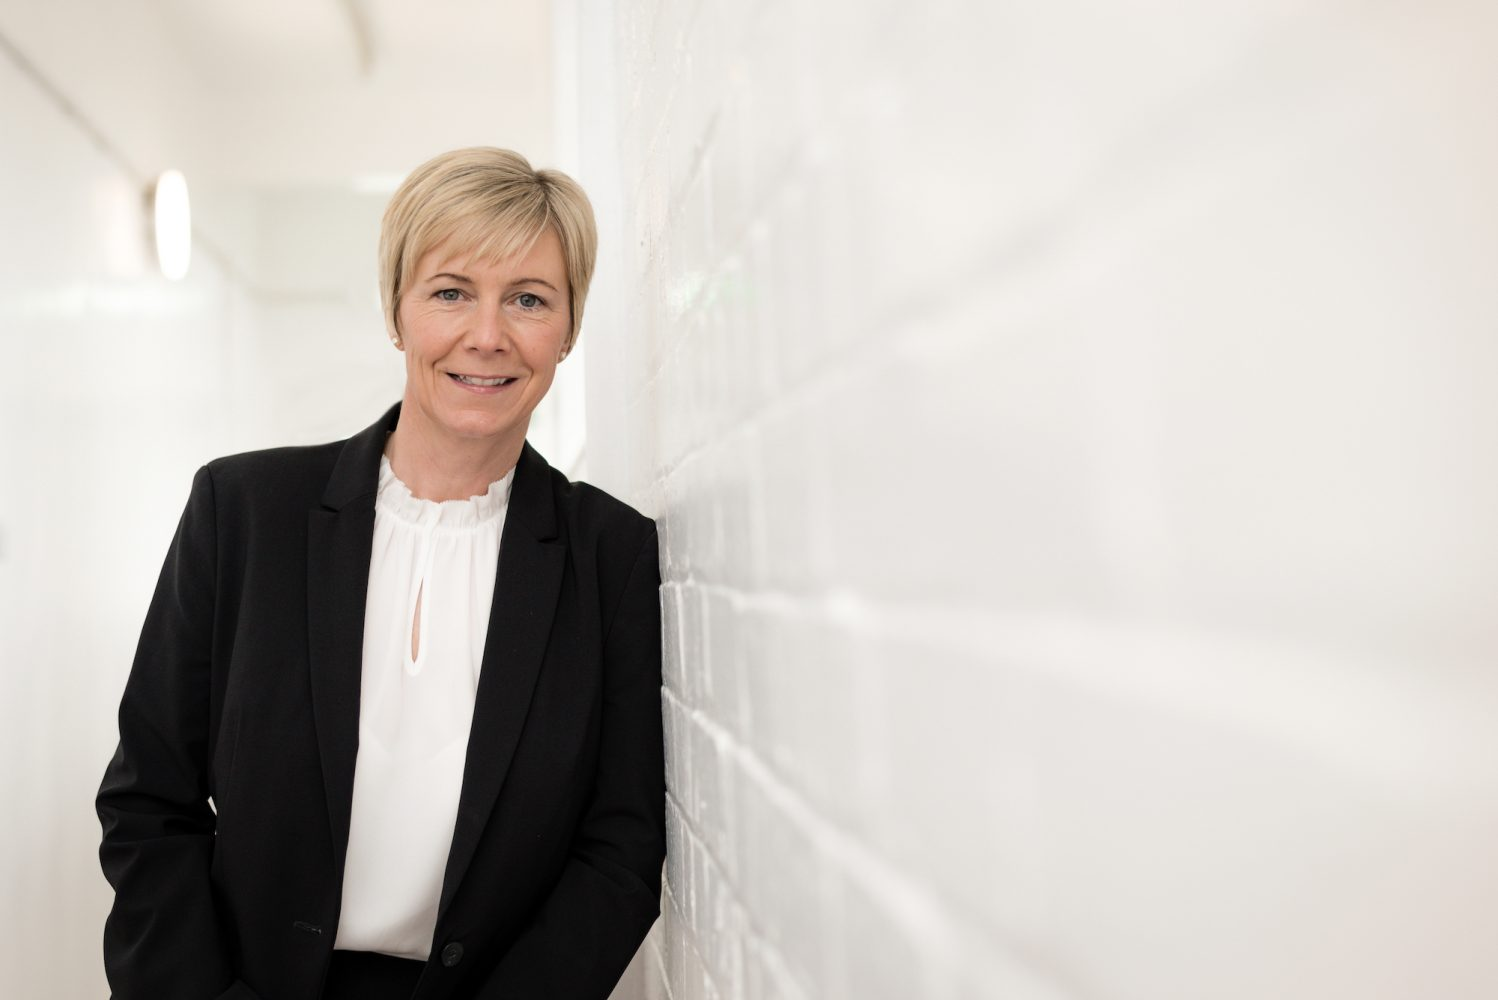 Lady with short blonde hair wearing a black jacket and a white shirt leaning against a white brick internal wall.